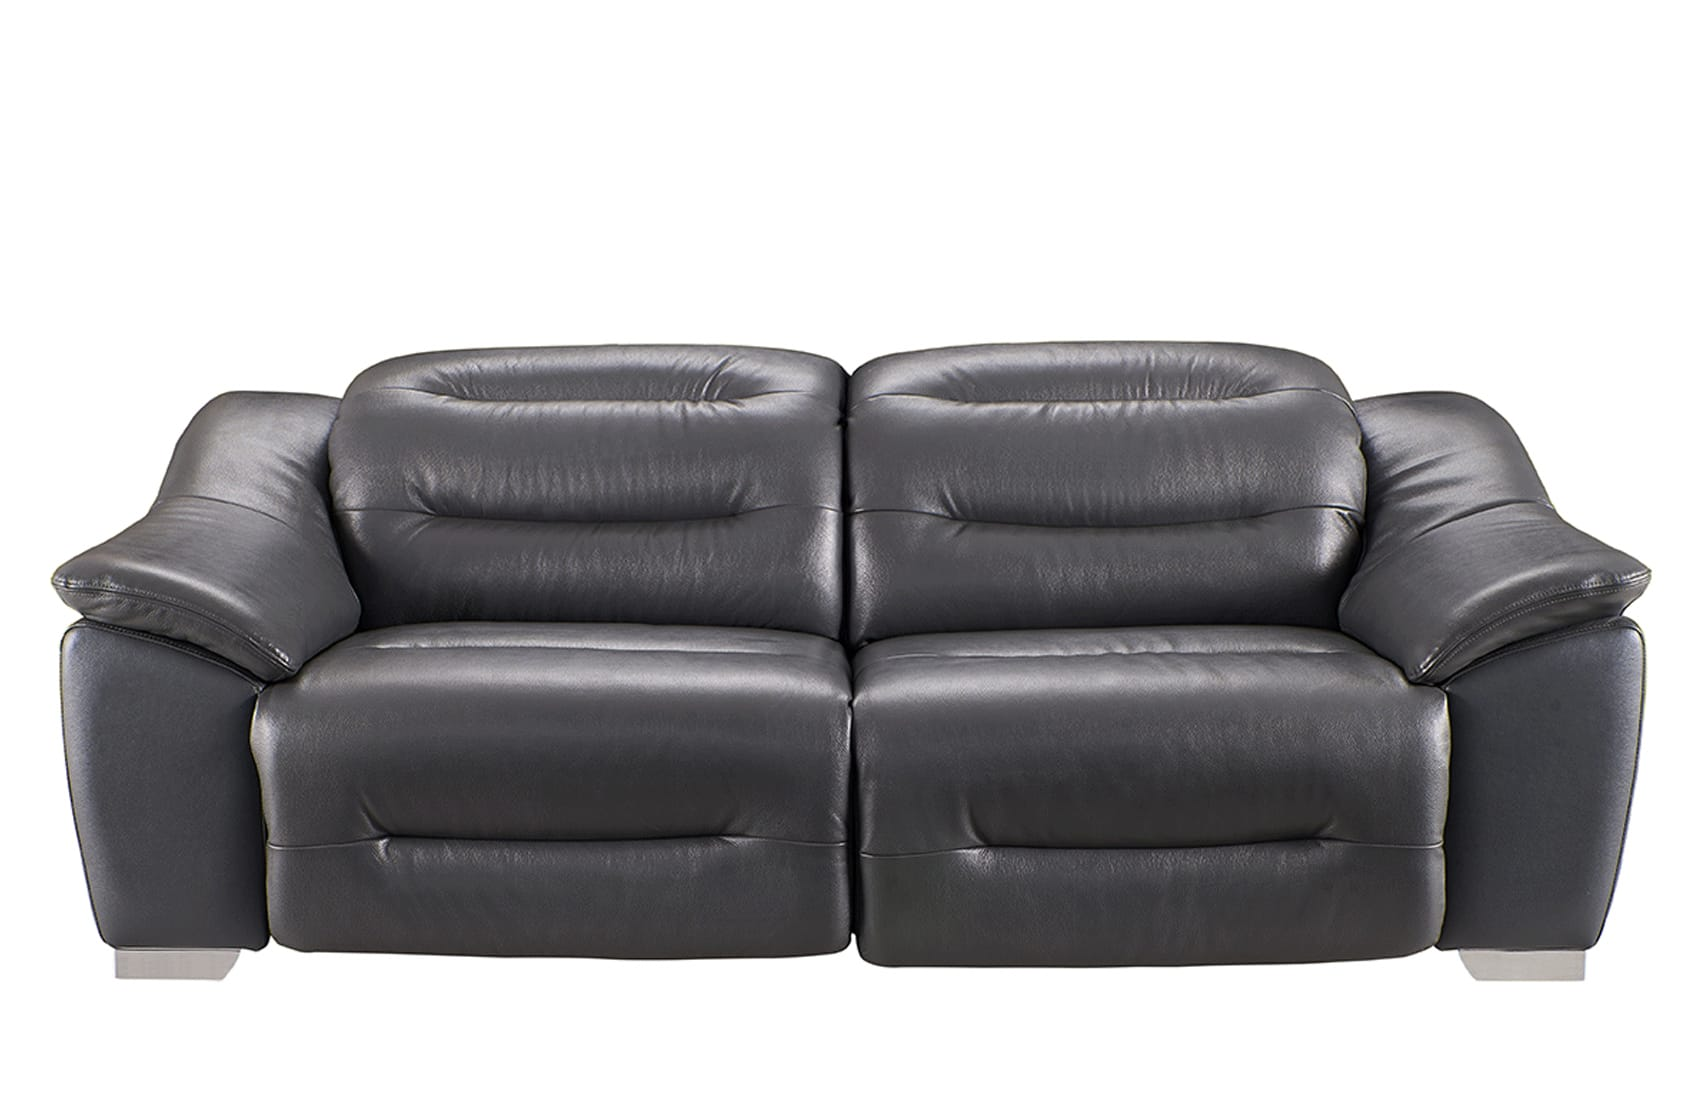 972 Charcoal Leather Sofa W 2 Electric